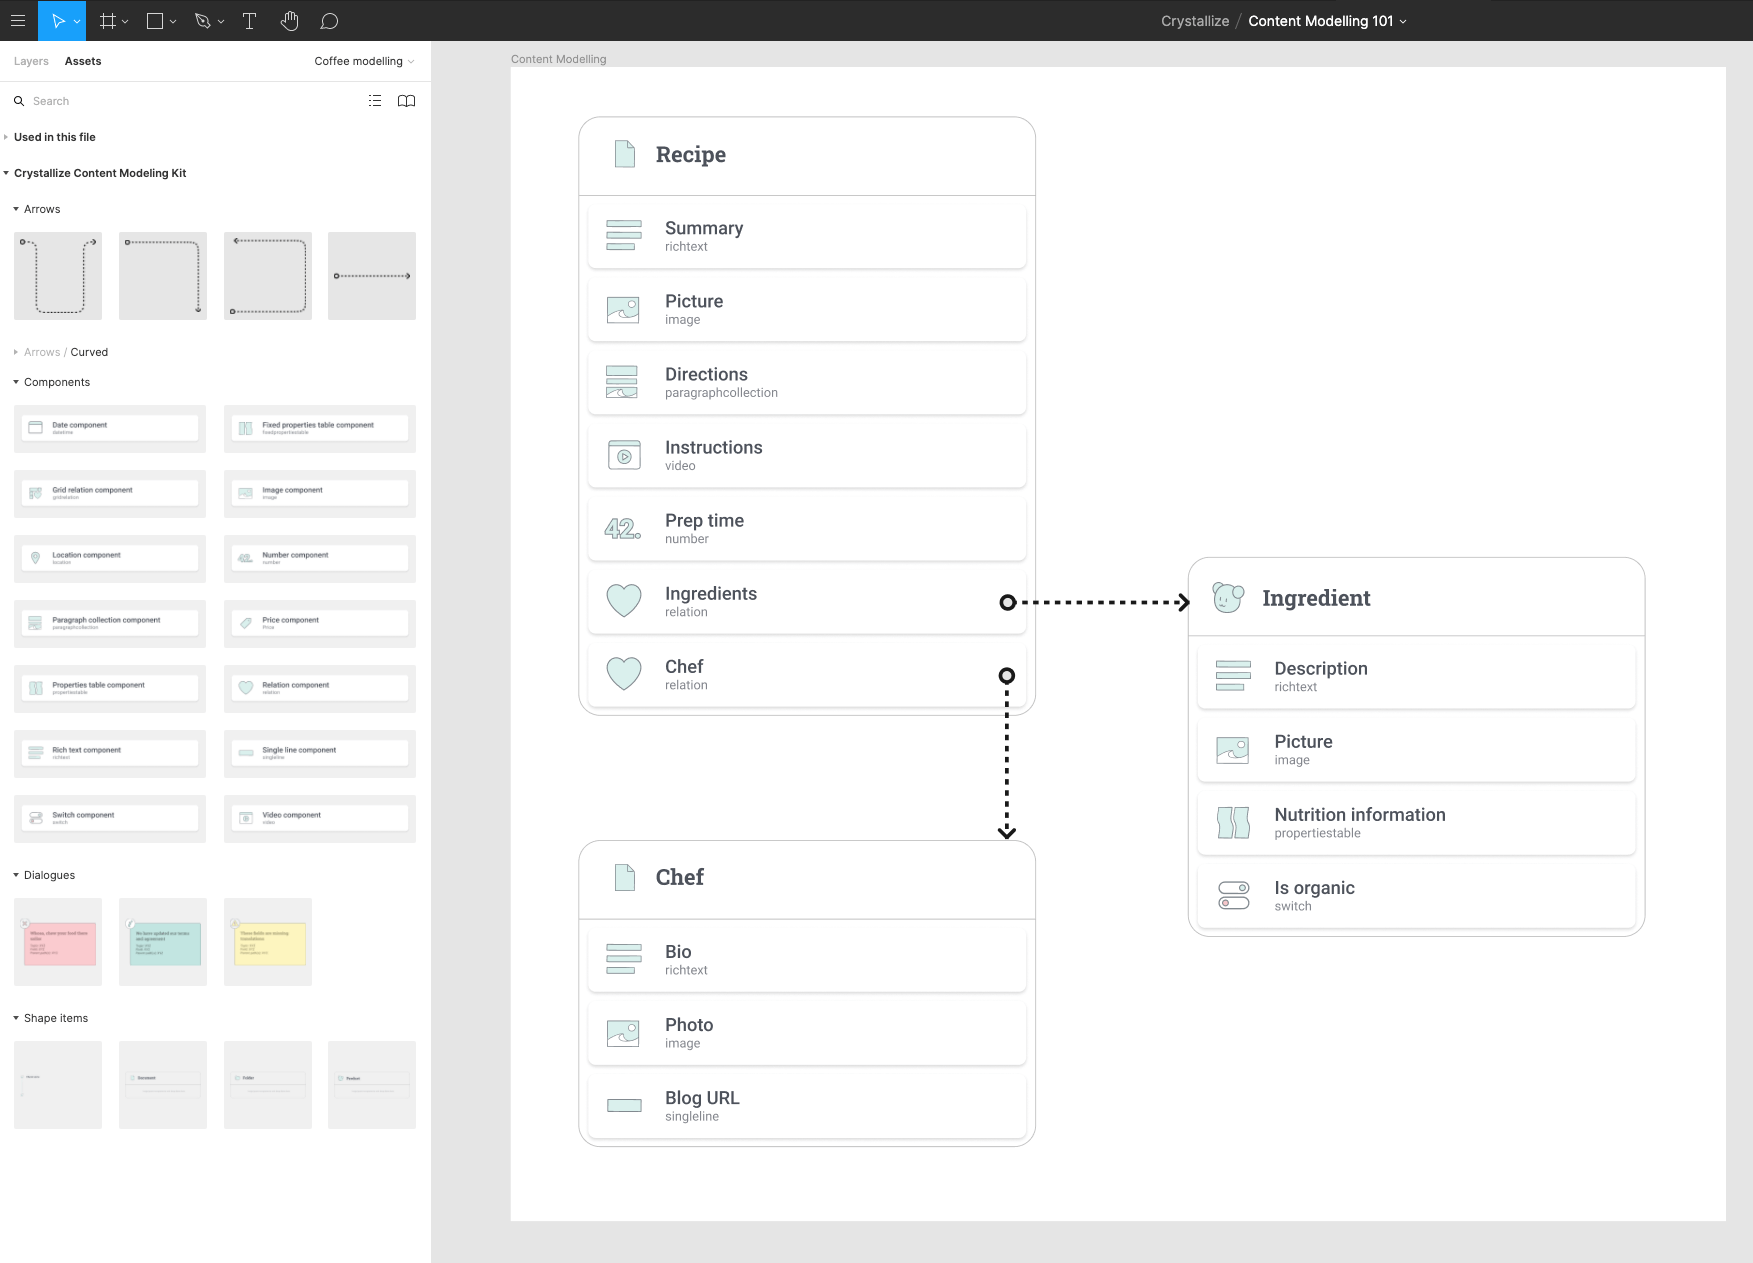 Figma design system for content modeling